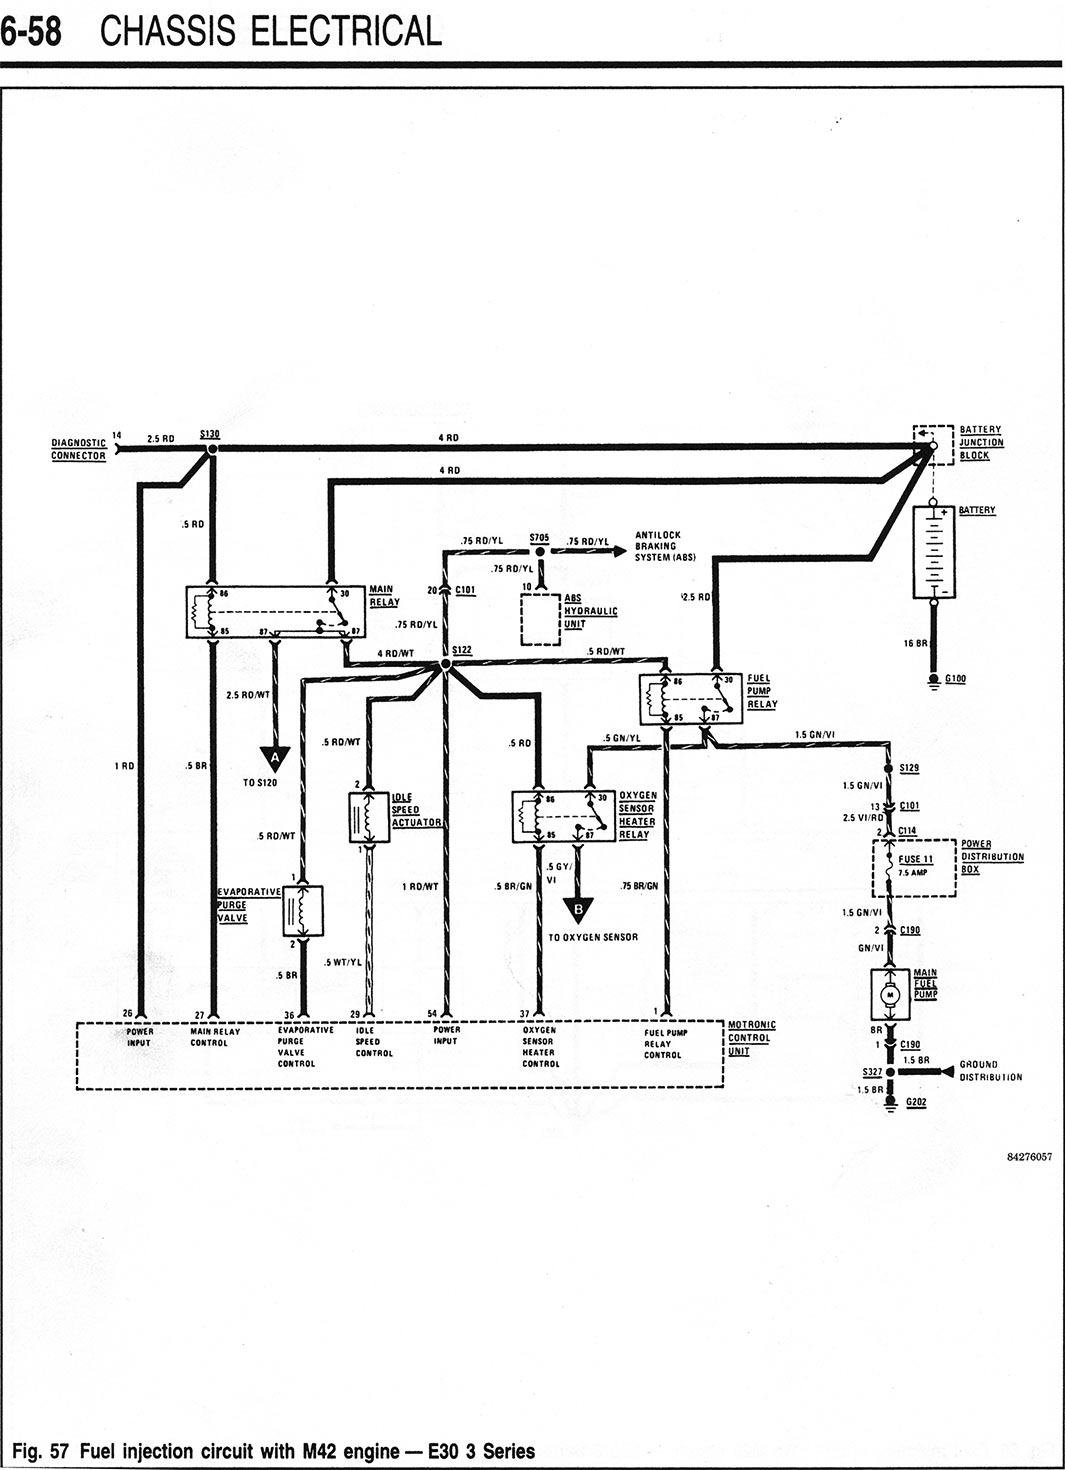 e30 ac wiring diagram e30 image wiring diagram e30 wiring diagram wiring diagram and schematic design on e30 ac wiring diagram